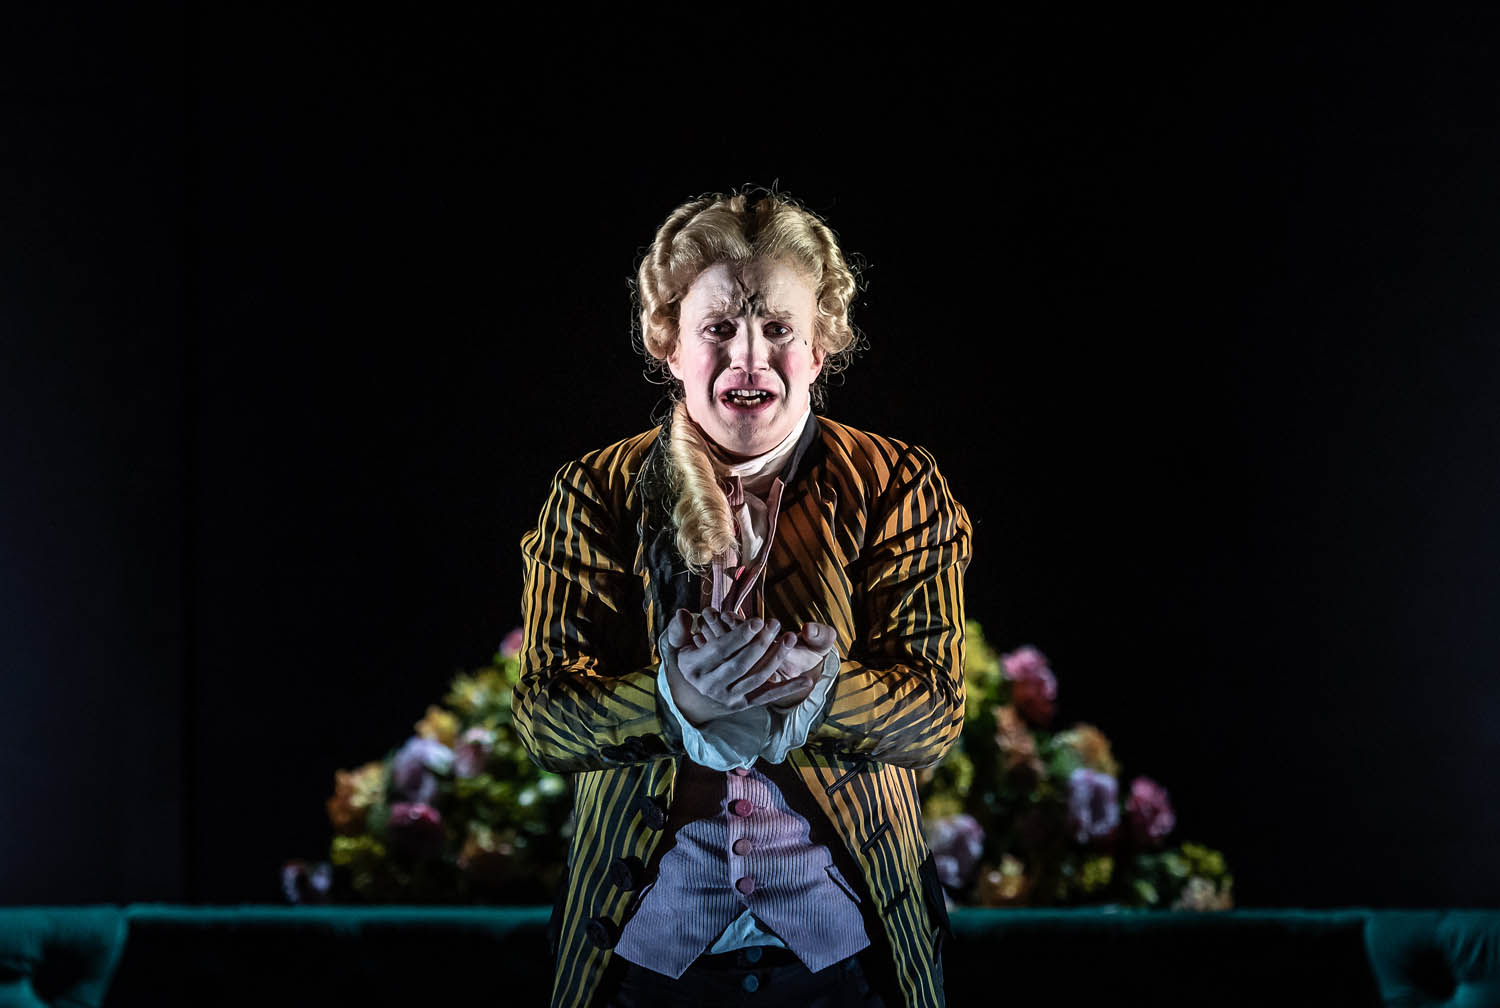 0201 James Laing as Demetrio (C) ROH 2019. Photographed by Clive Barda.jpg